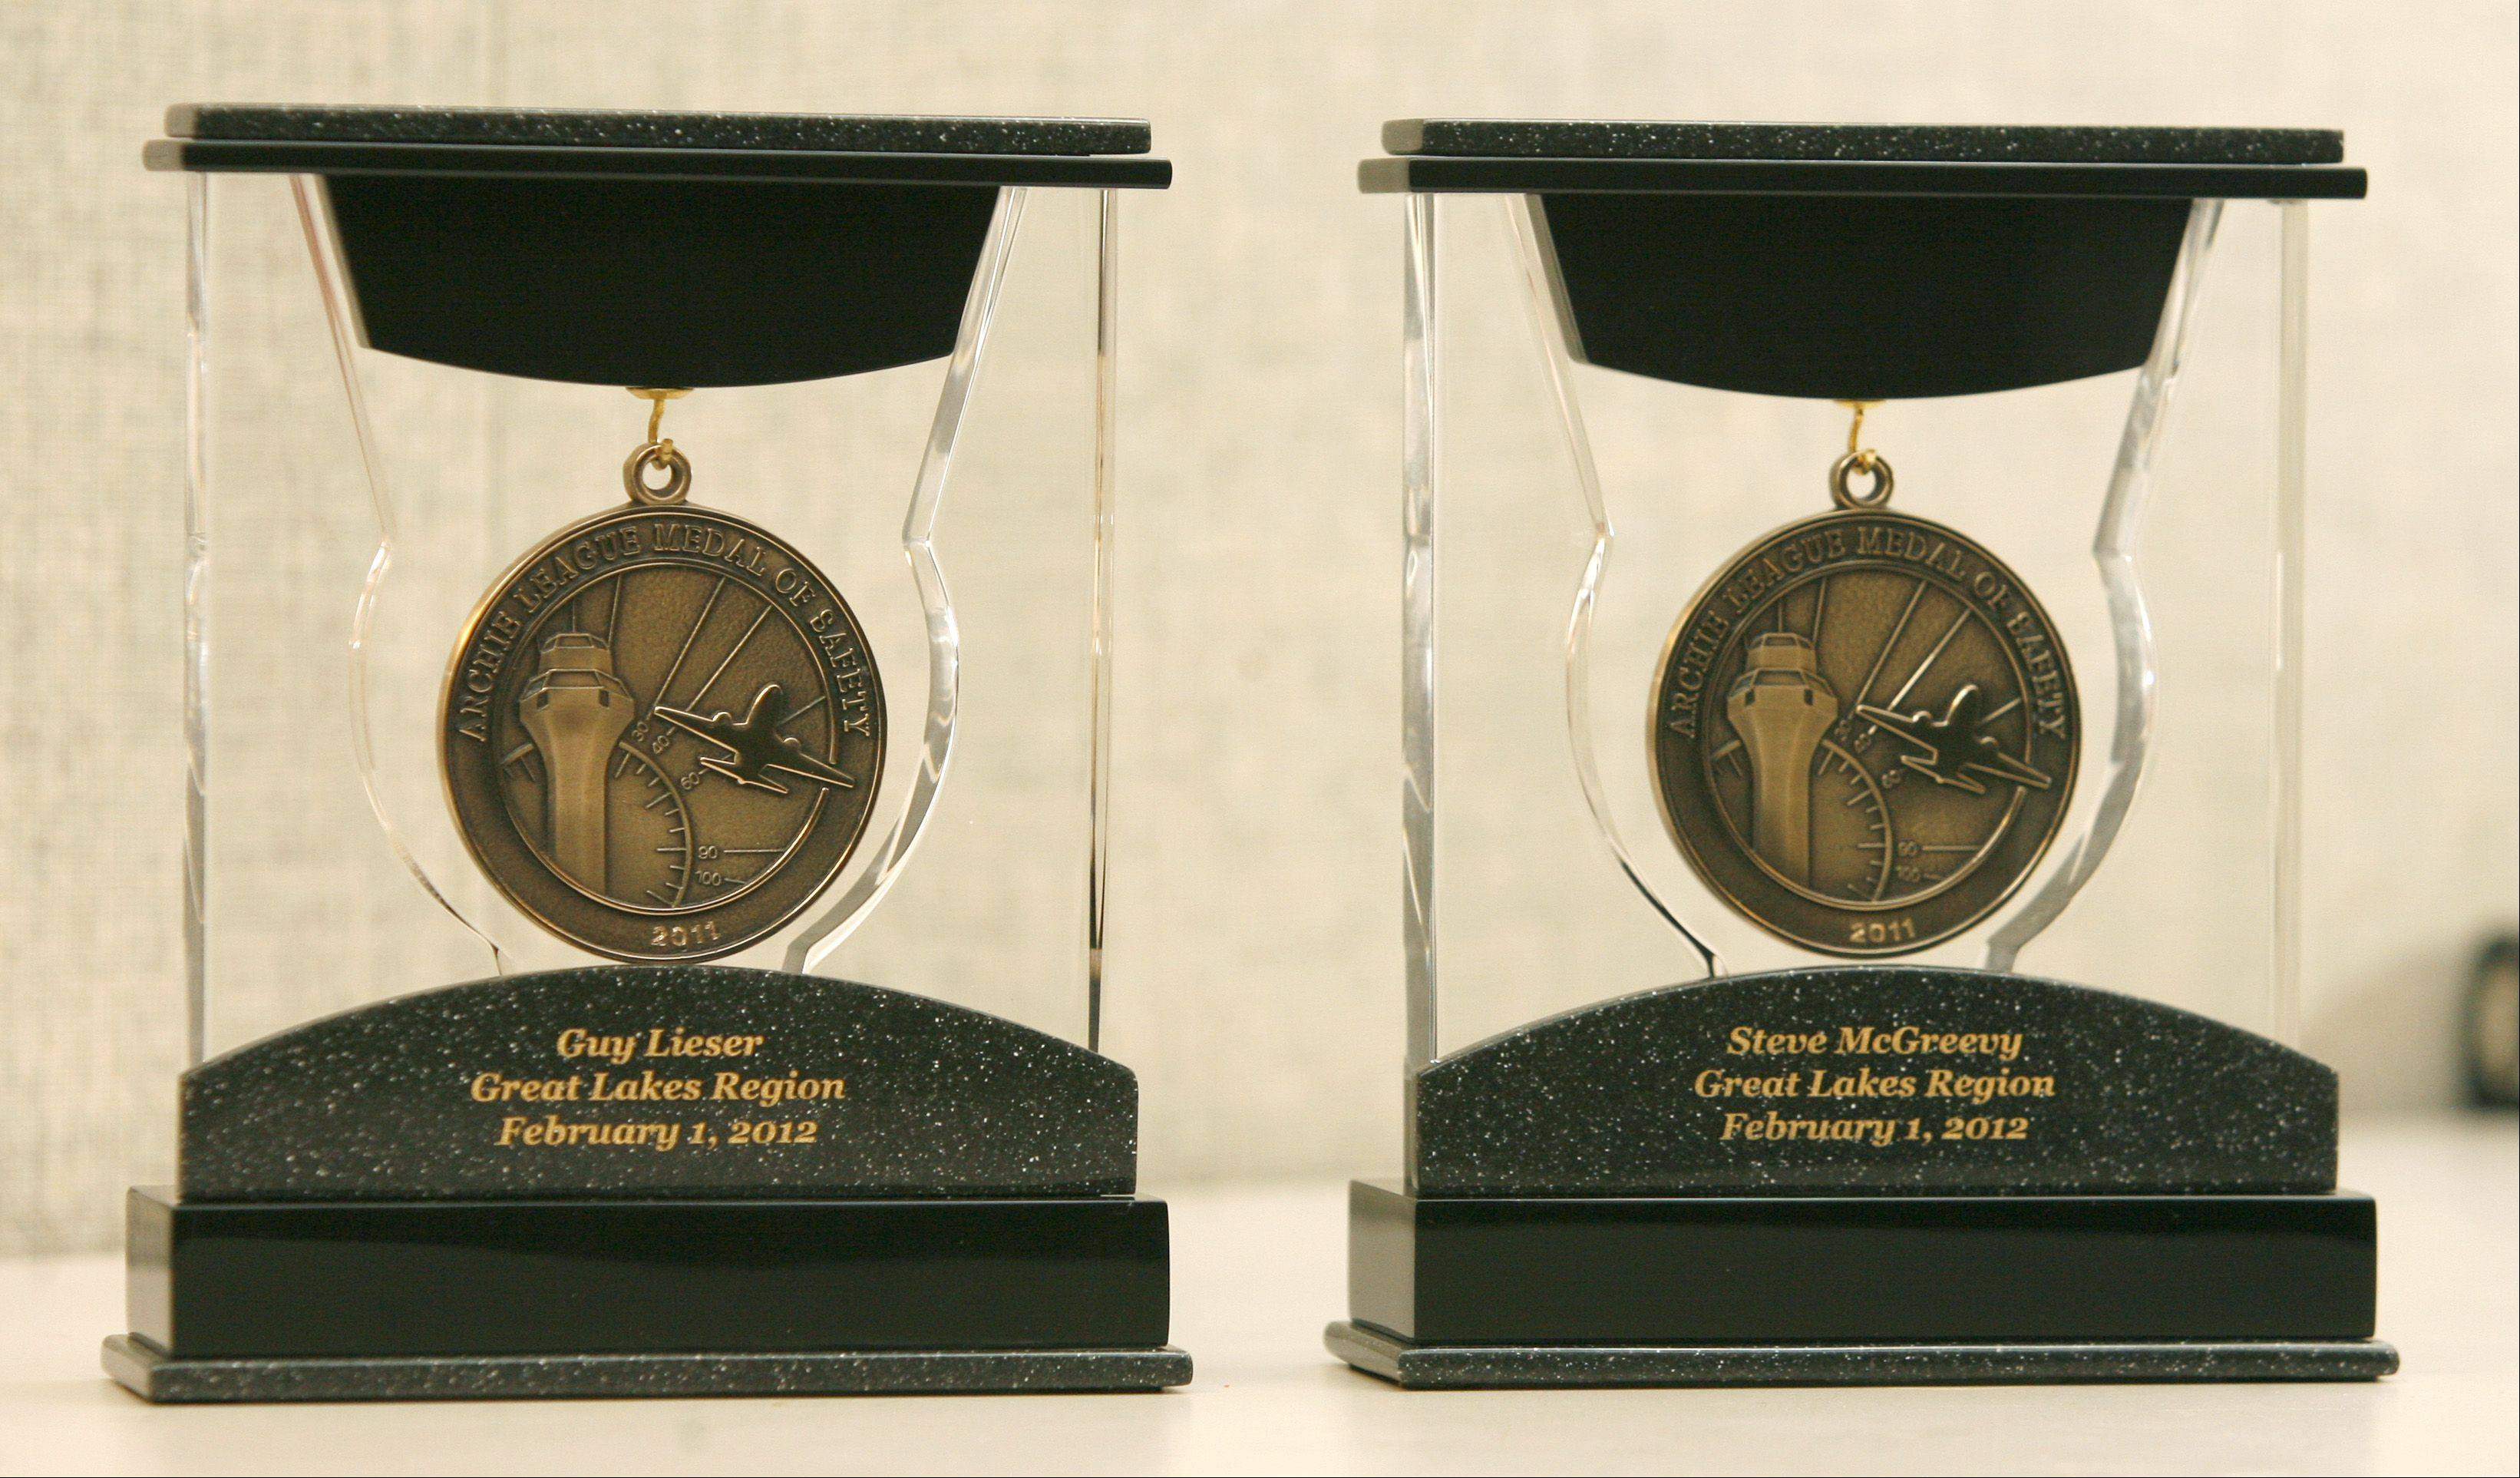 Steve McGreevy and Guy Lieser, who maneuvered a distressed pilot safely to the ground from the Air Route Traffic Control Center in Aurora, received the prestigious Archie League Medal of Safety Award for their efforts.